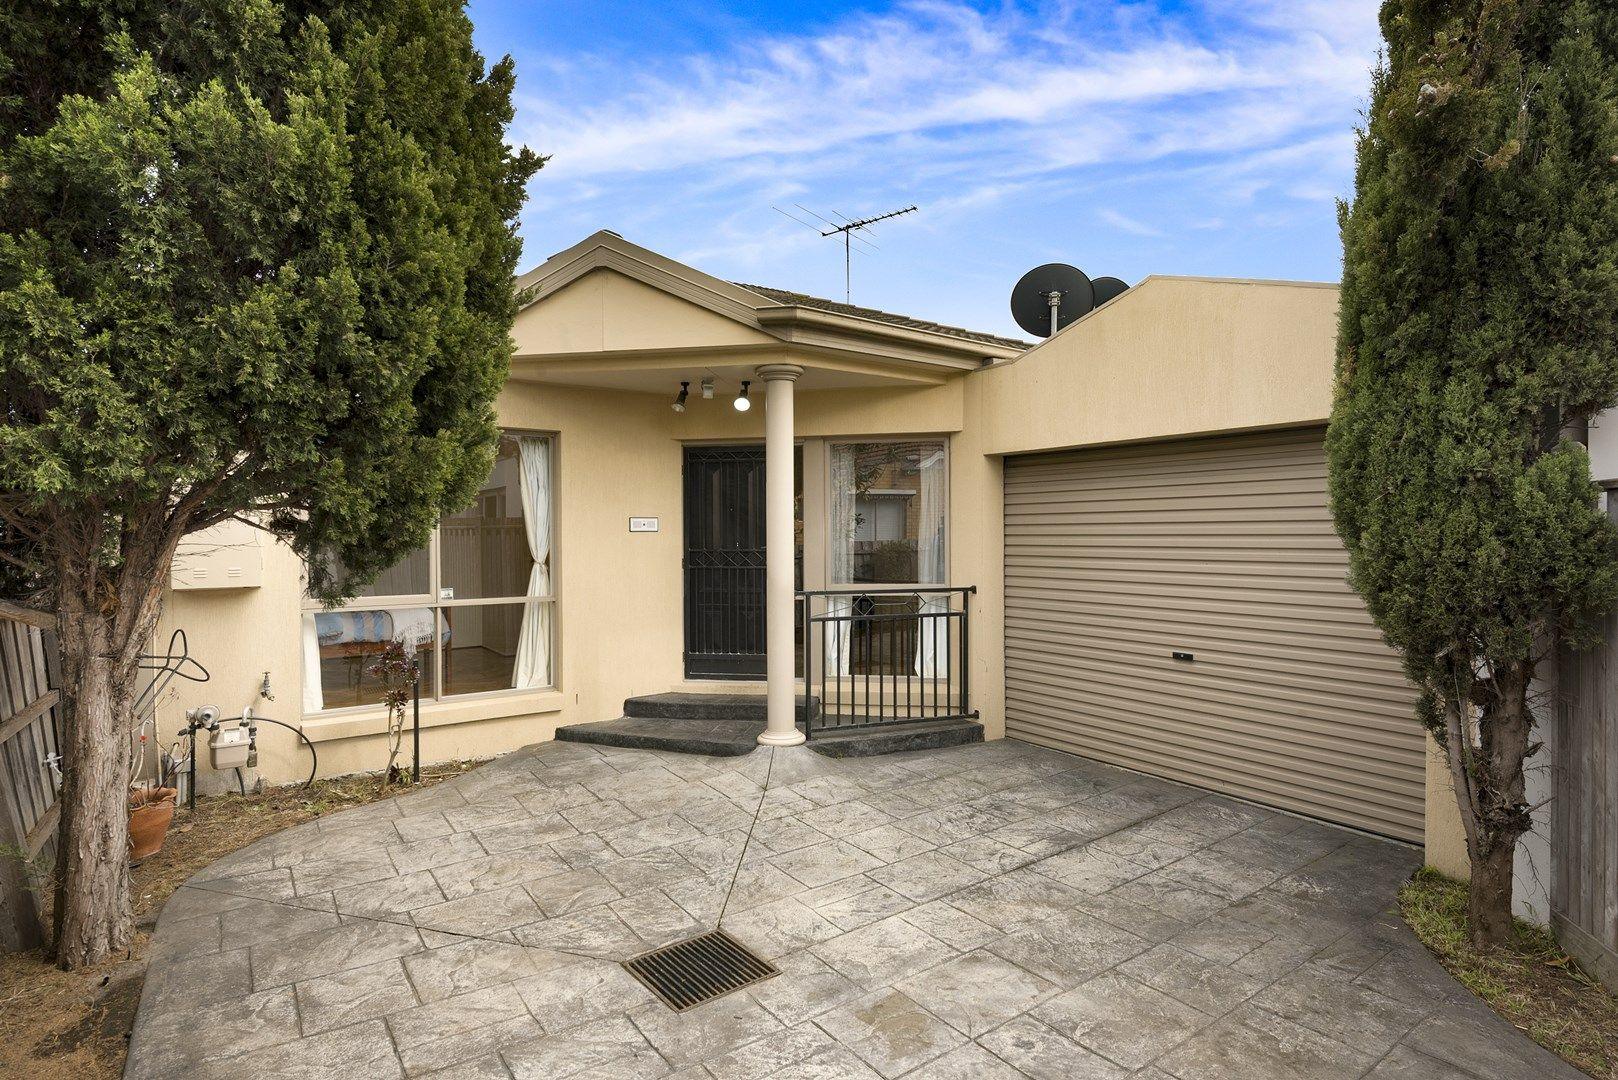 2/167 Kambrook Road, Caulfield VIC 3162, Image 0